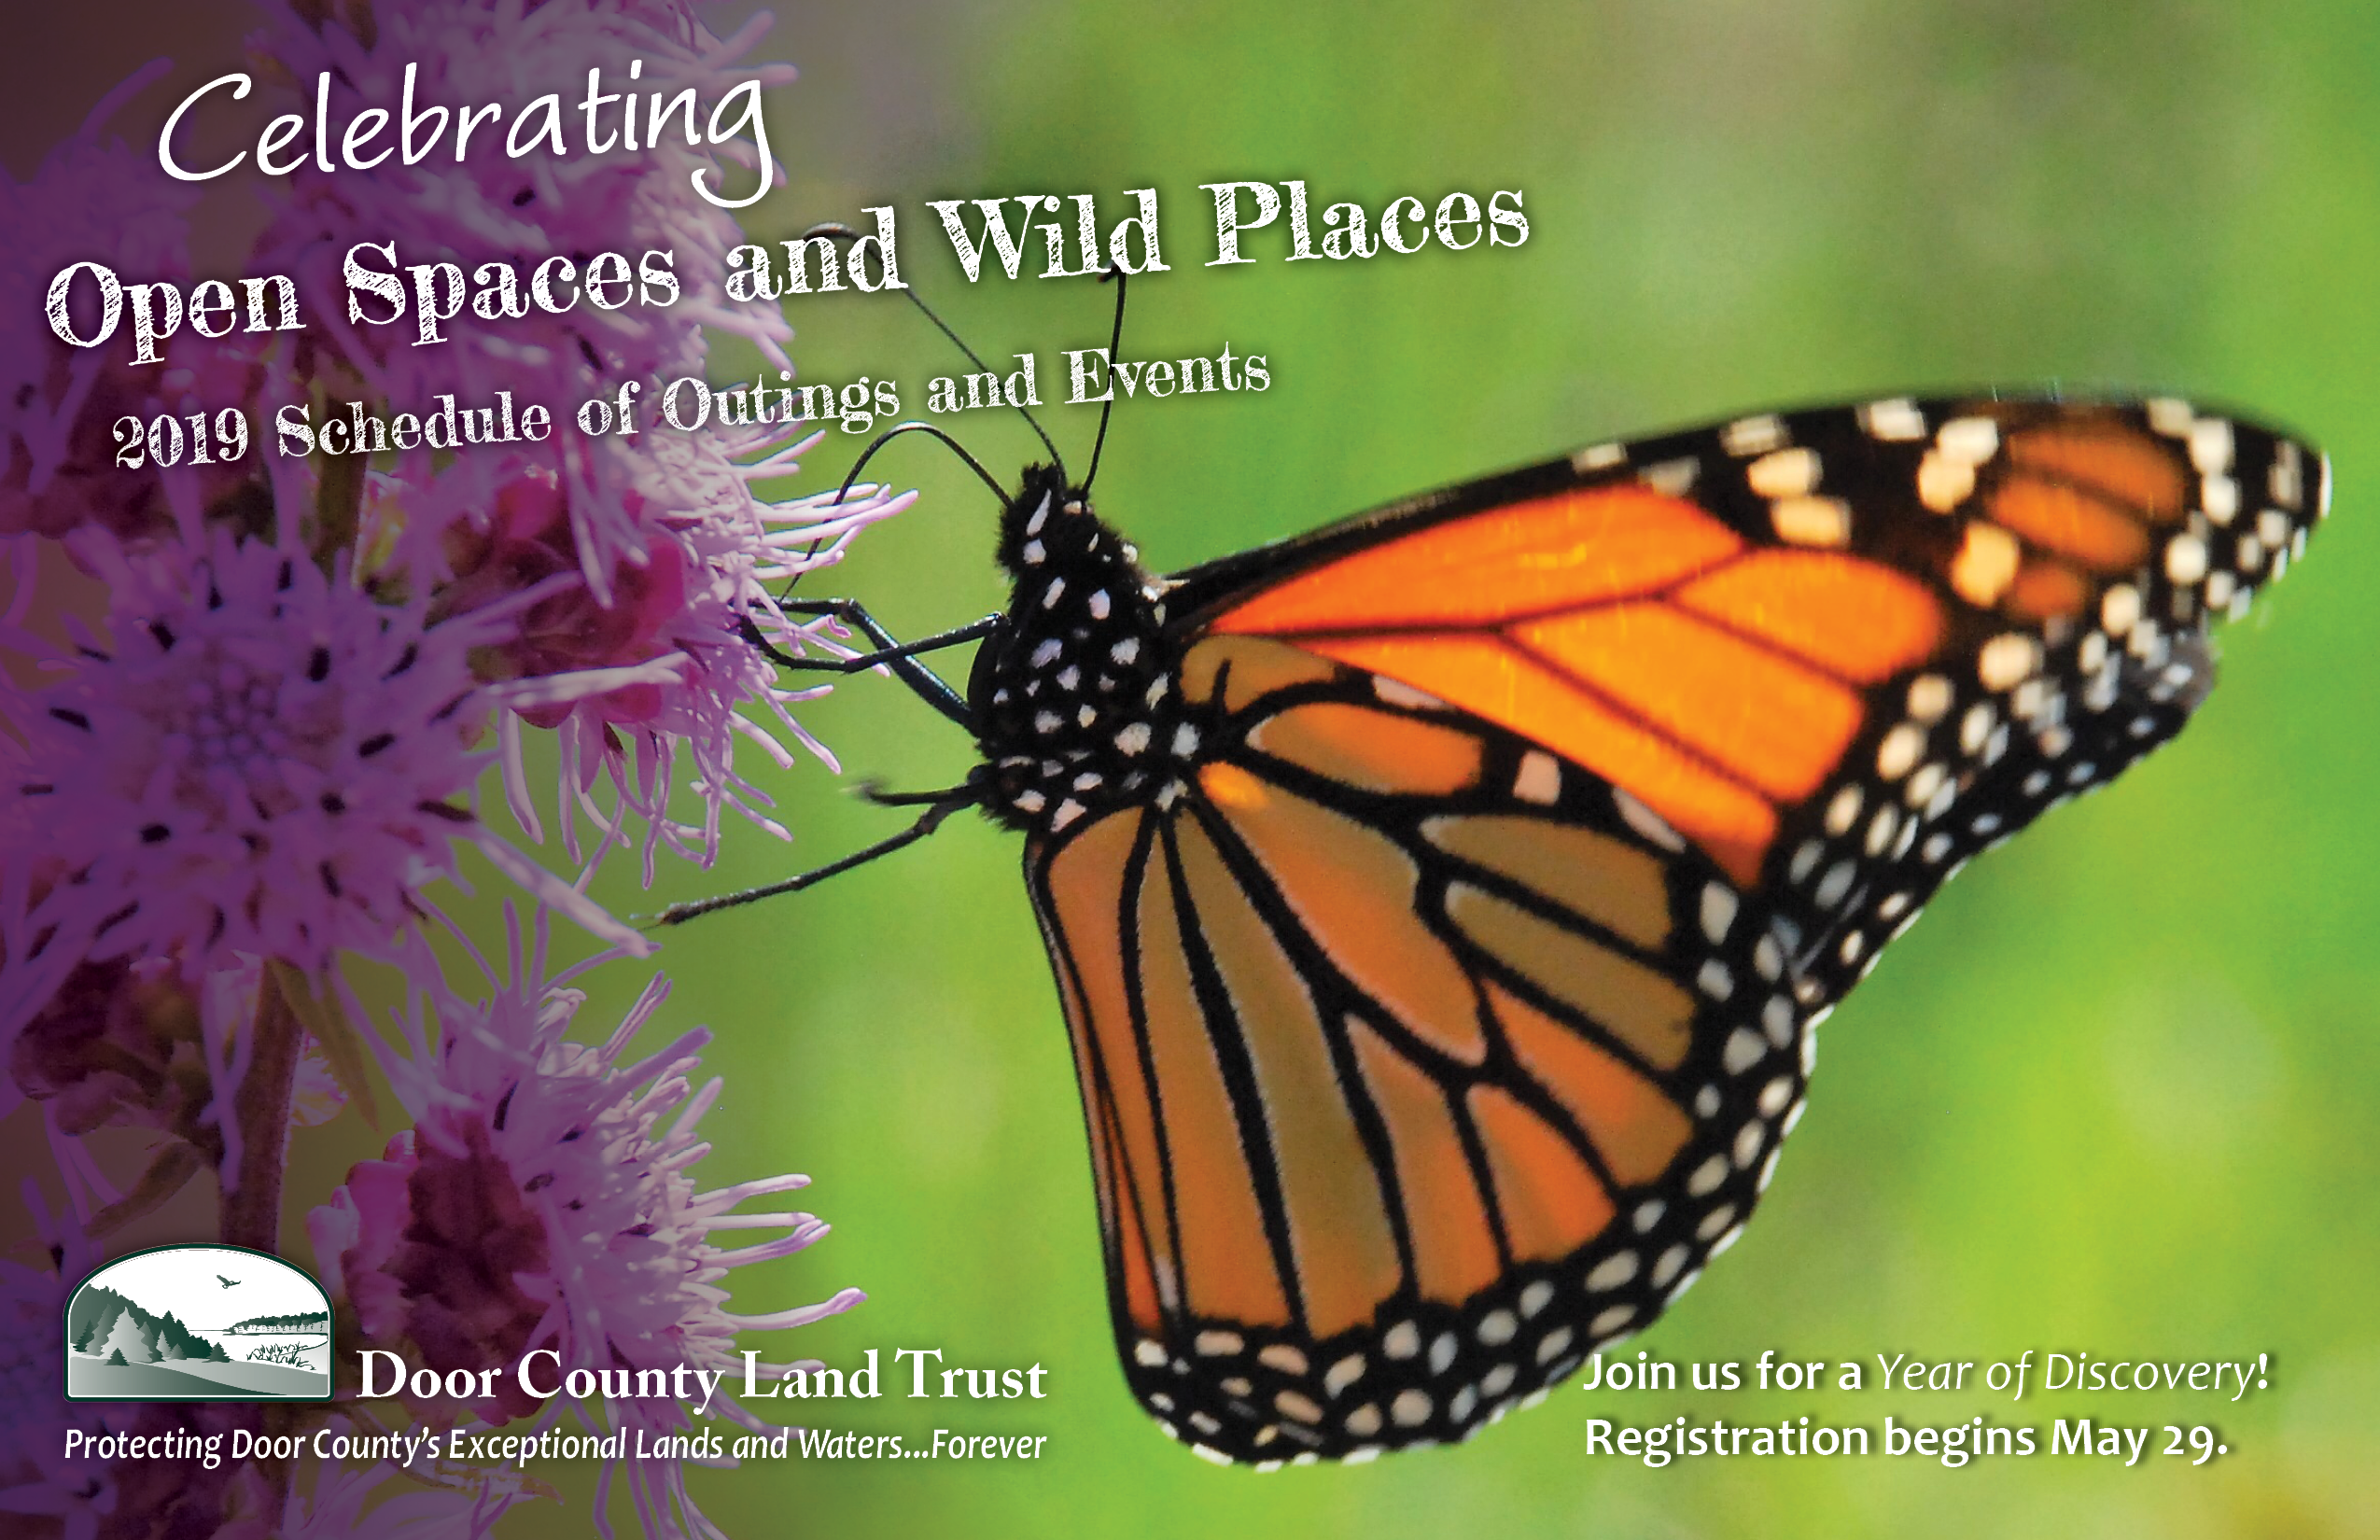 Celebrating Open Spaces and Wild Places